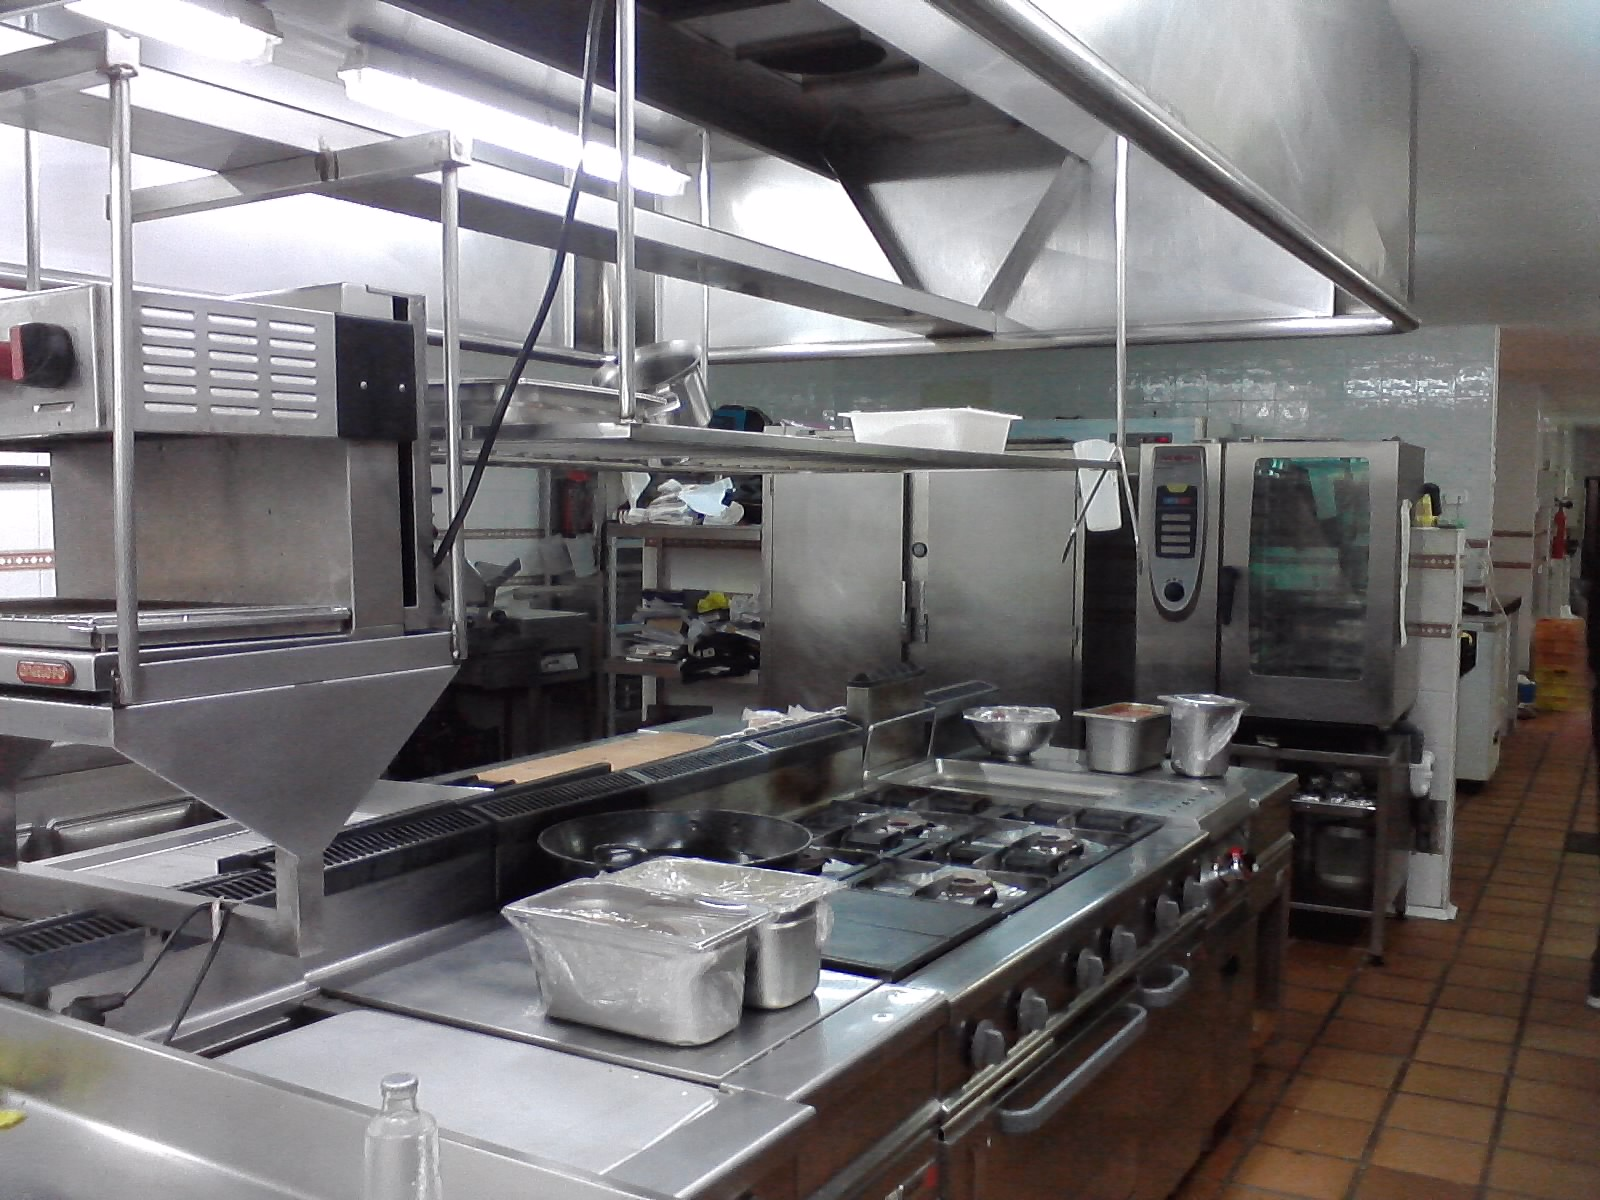 Tallerdehosteler ab sica cocinas for V kitchen restaurant